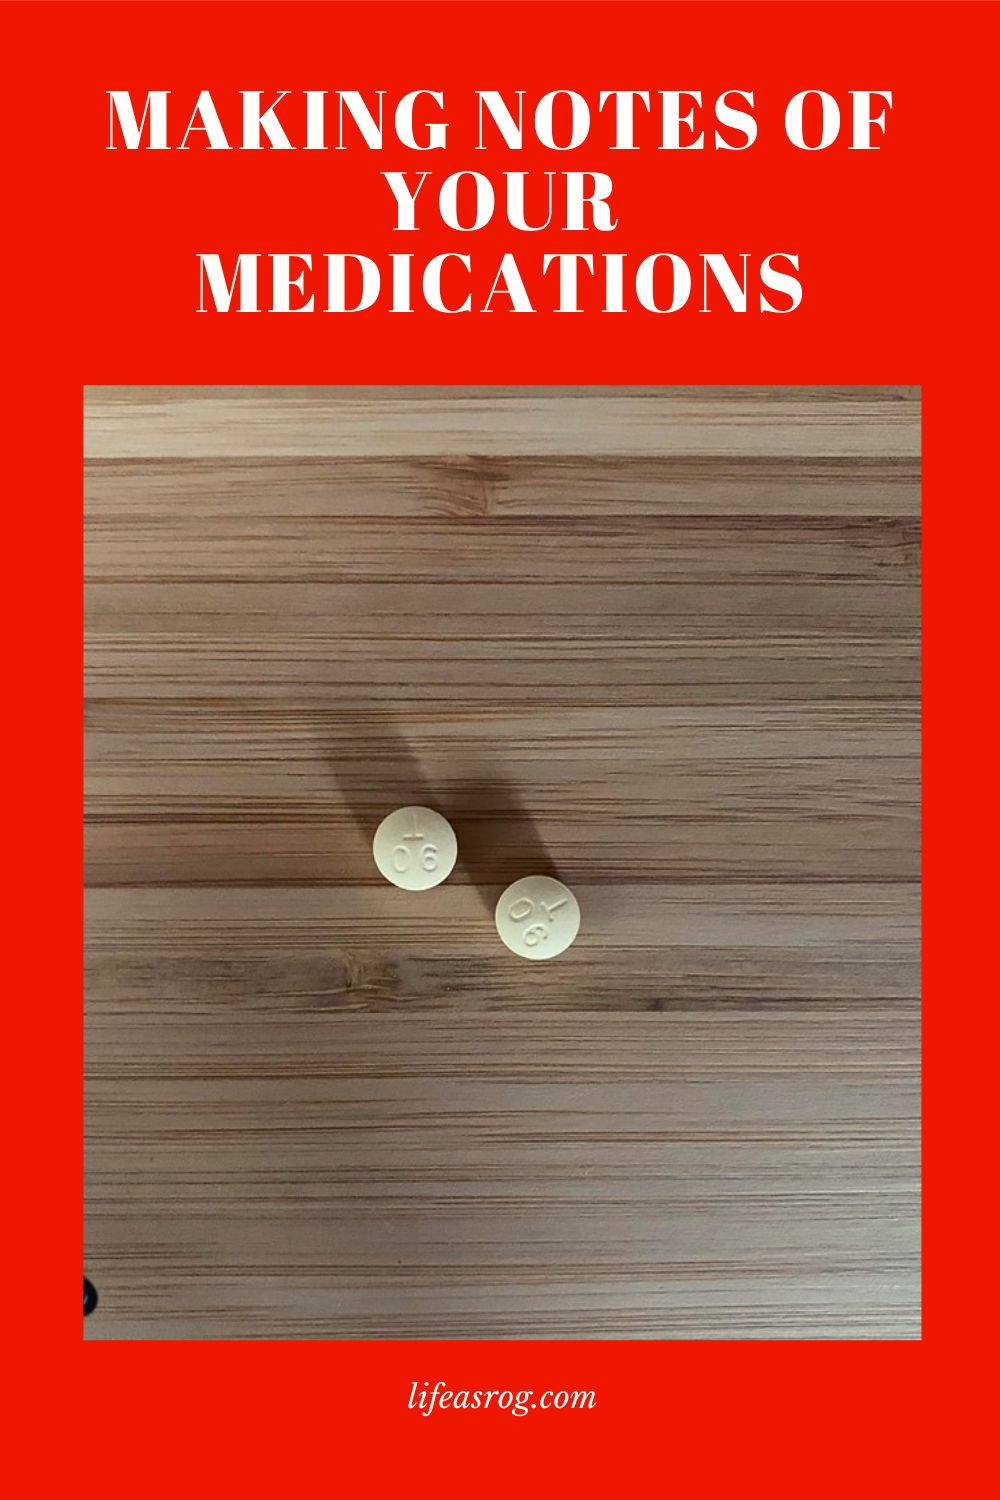 Making Notes of Your Medications